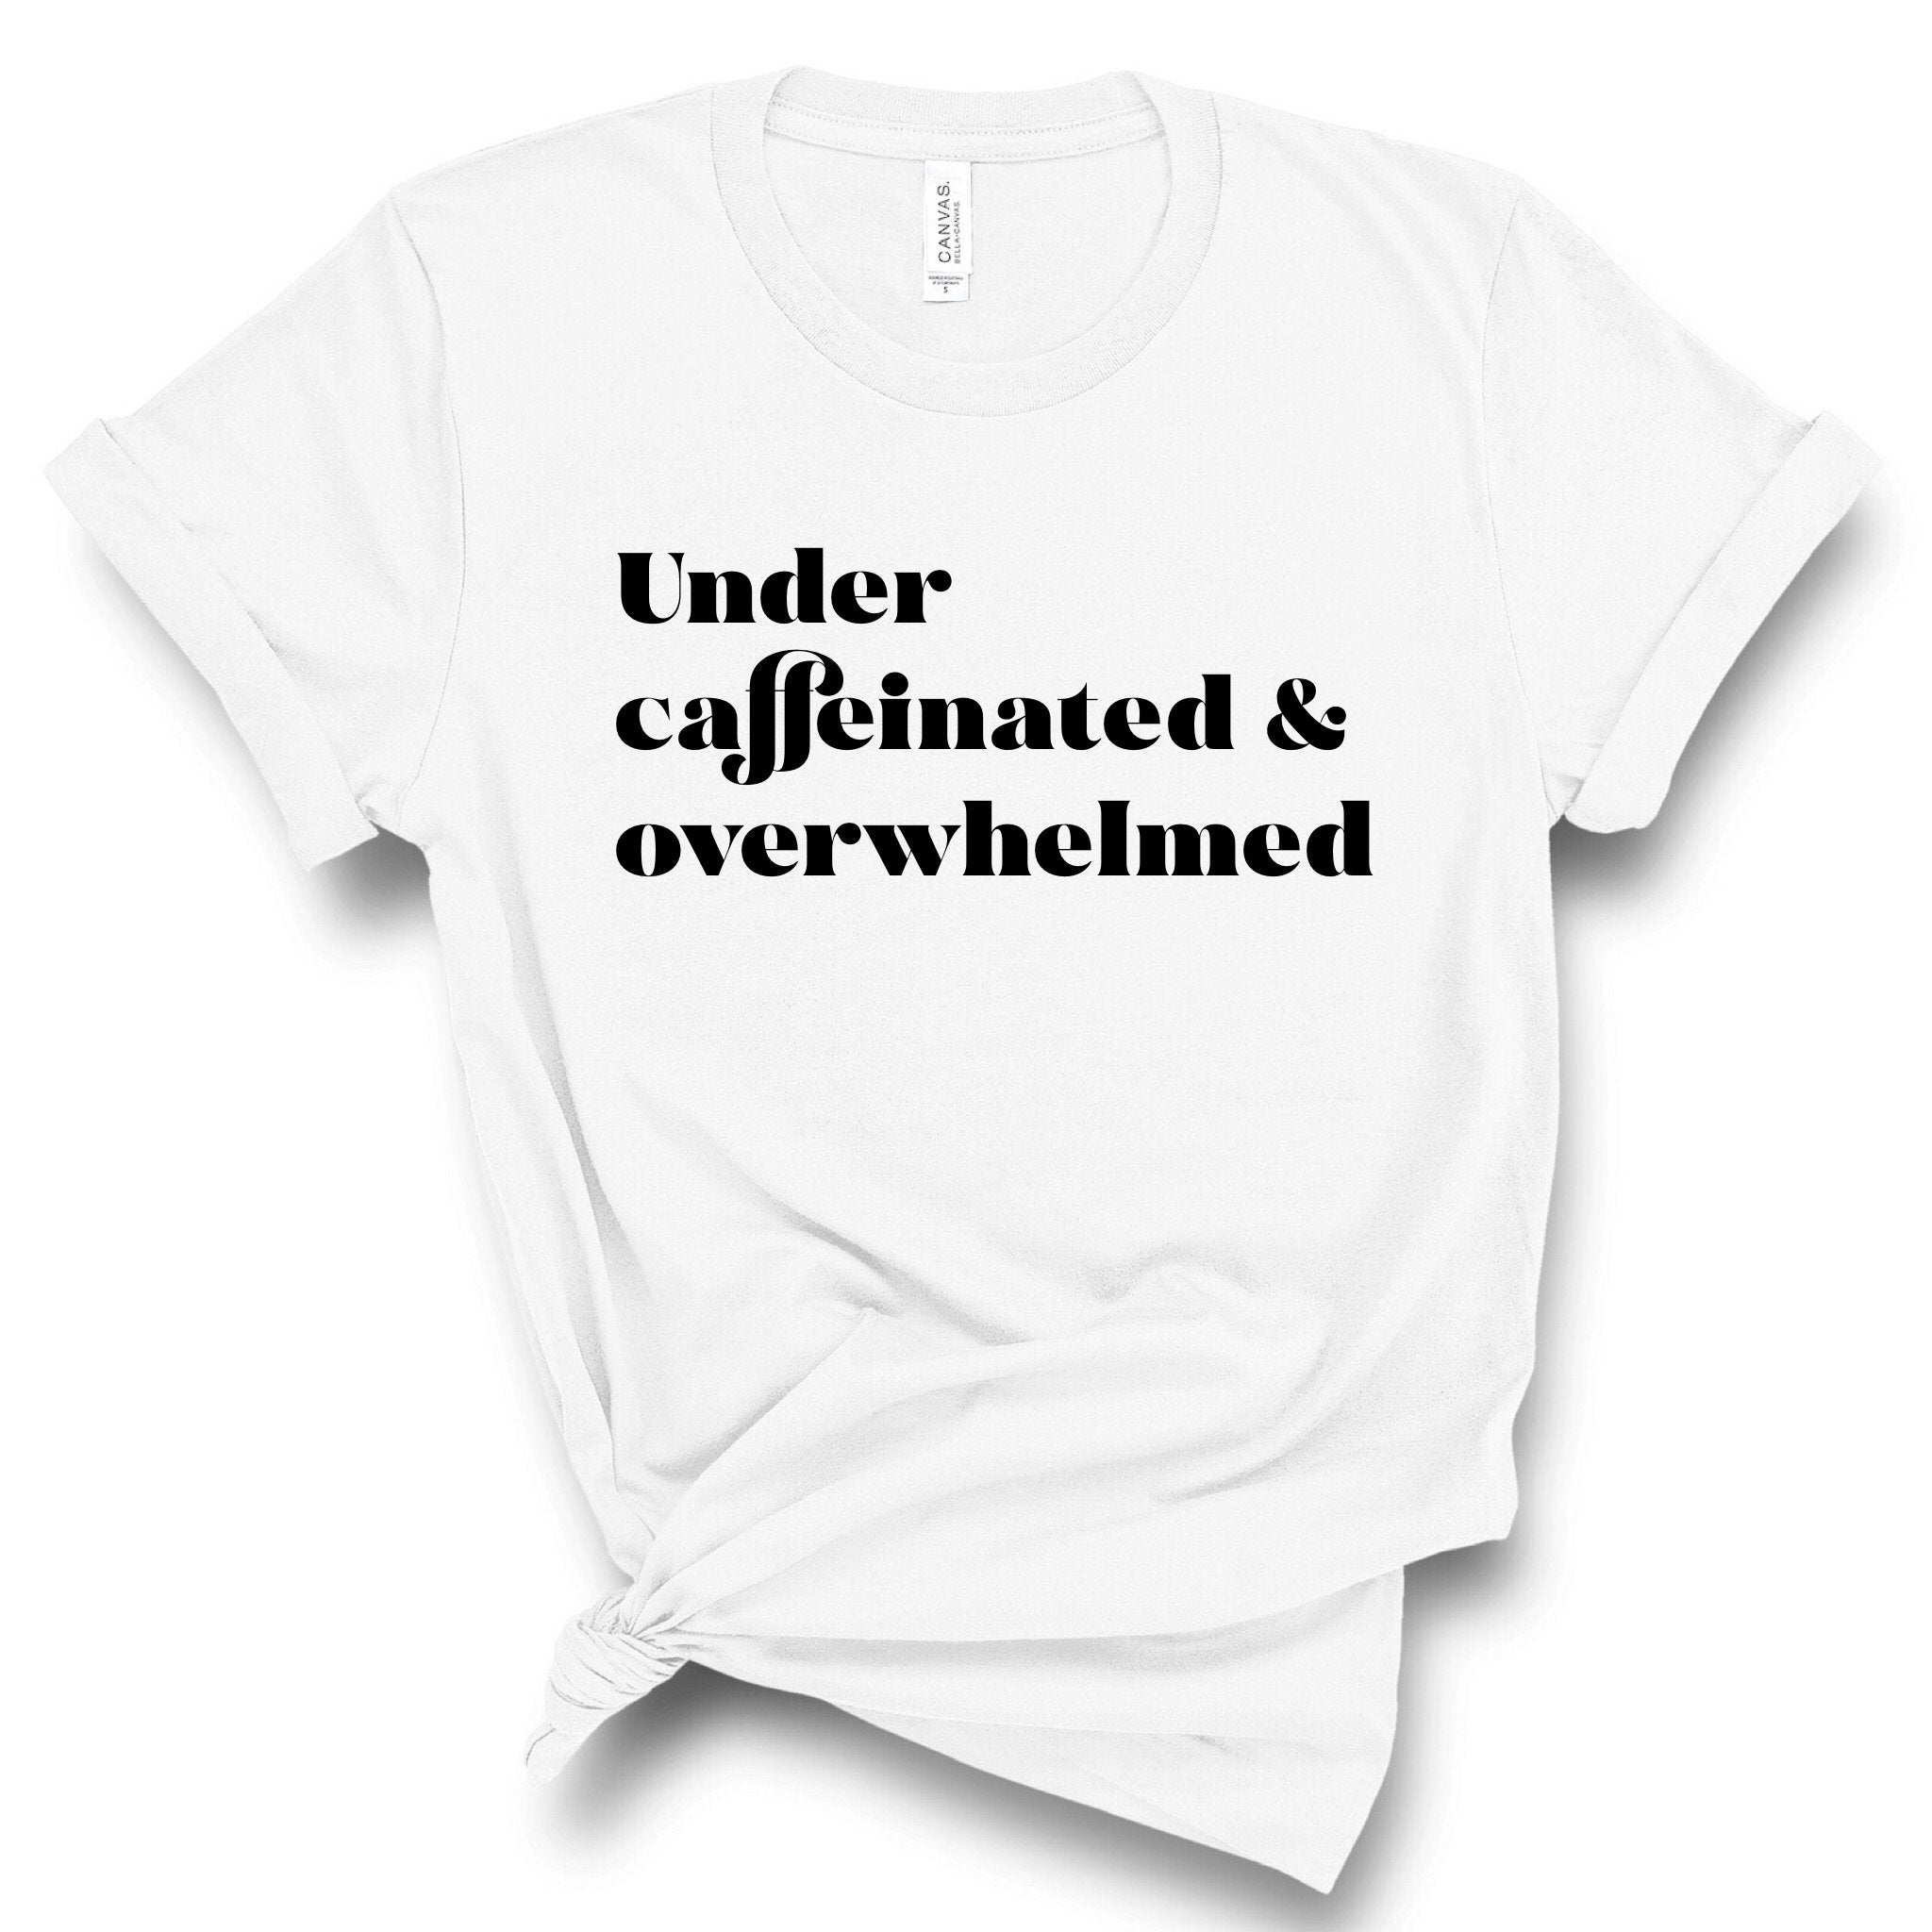 Under Caffeinated & Overwhelmed Graphic Tee